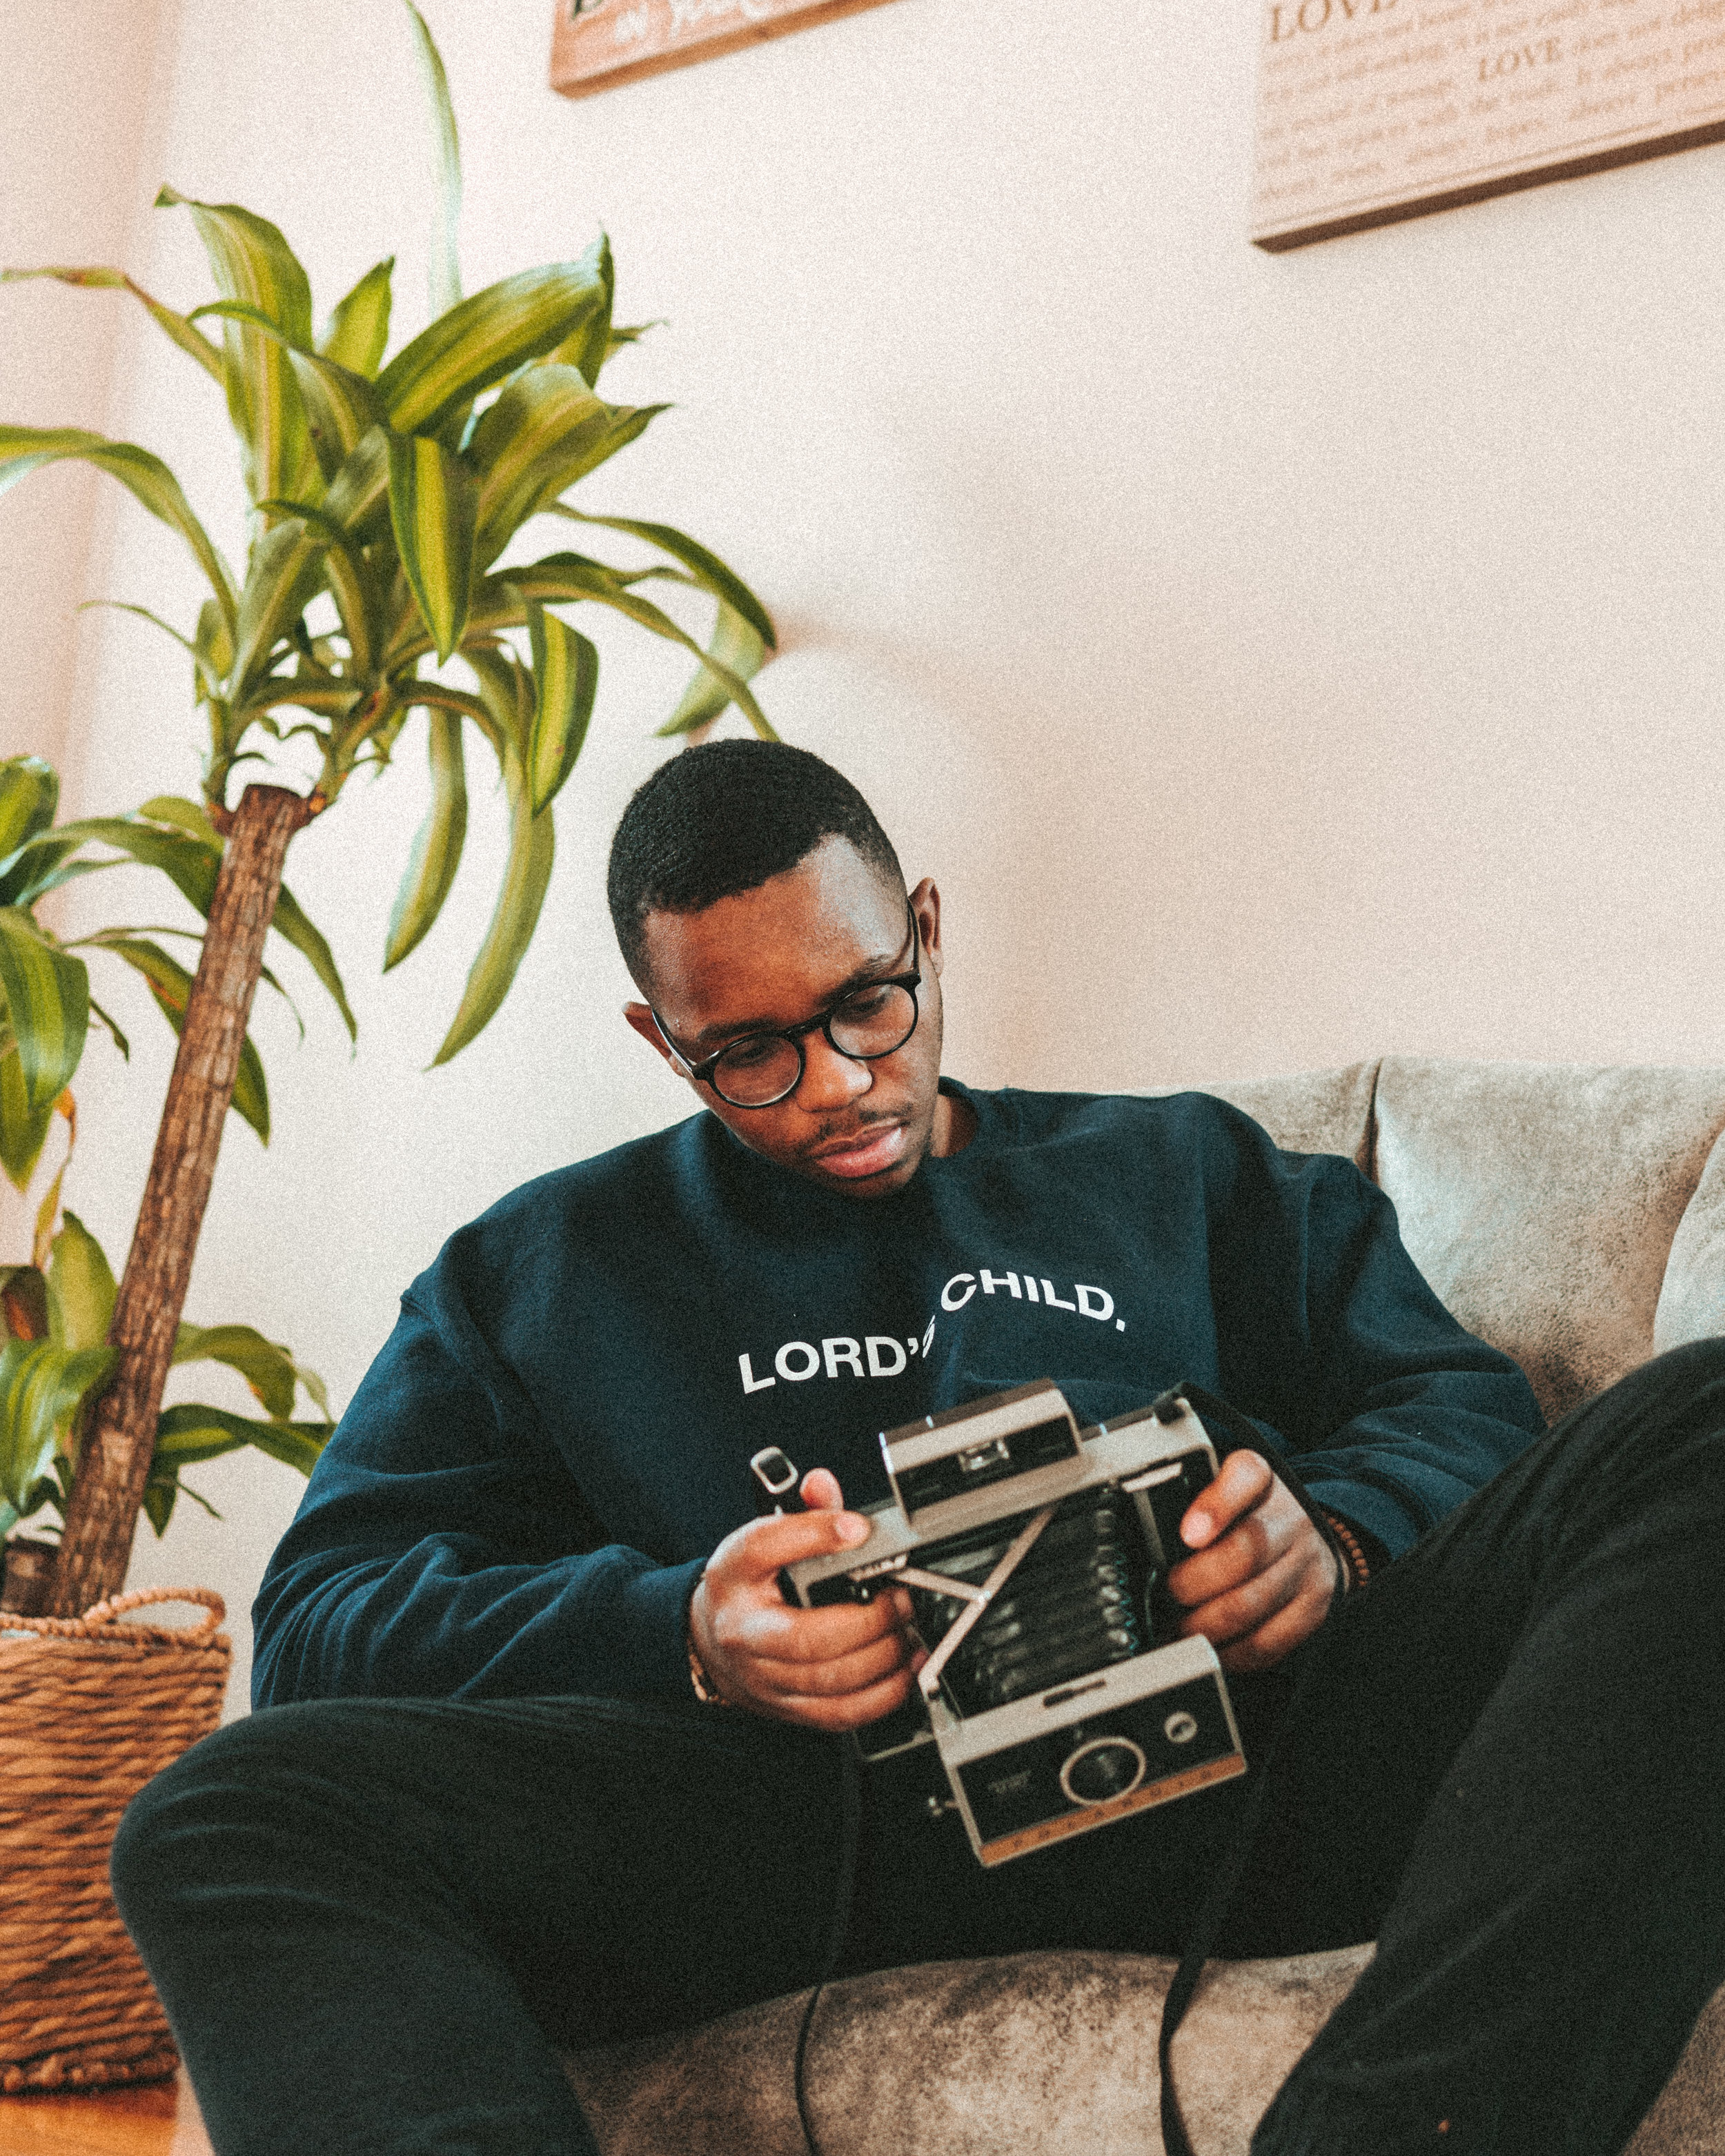 LORD'S CHILD. - BRAND // PODCAST